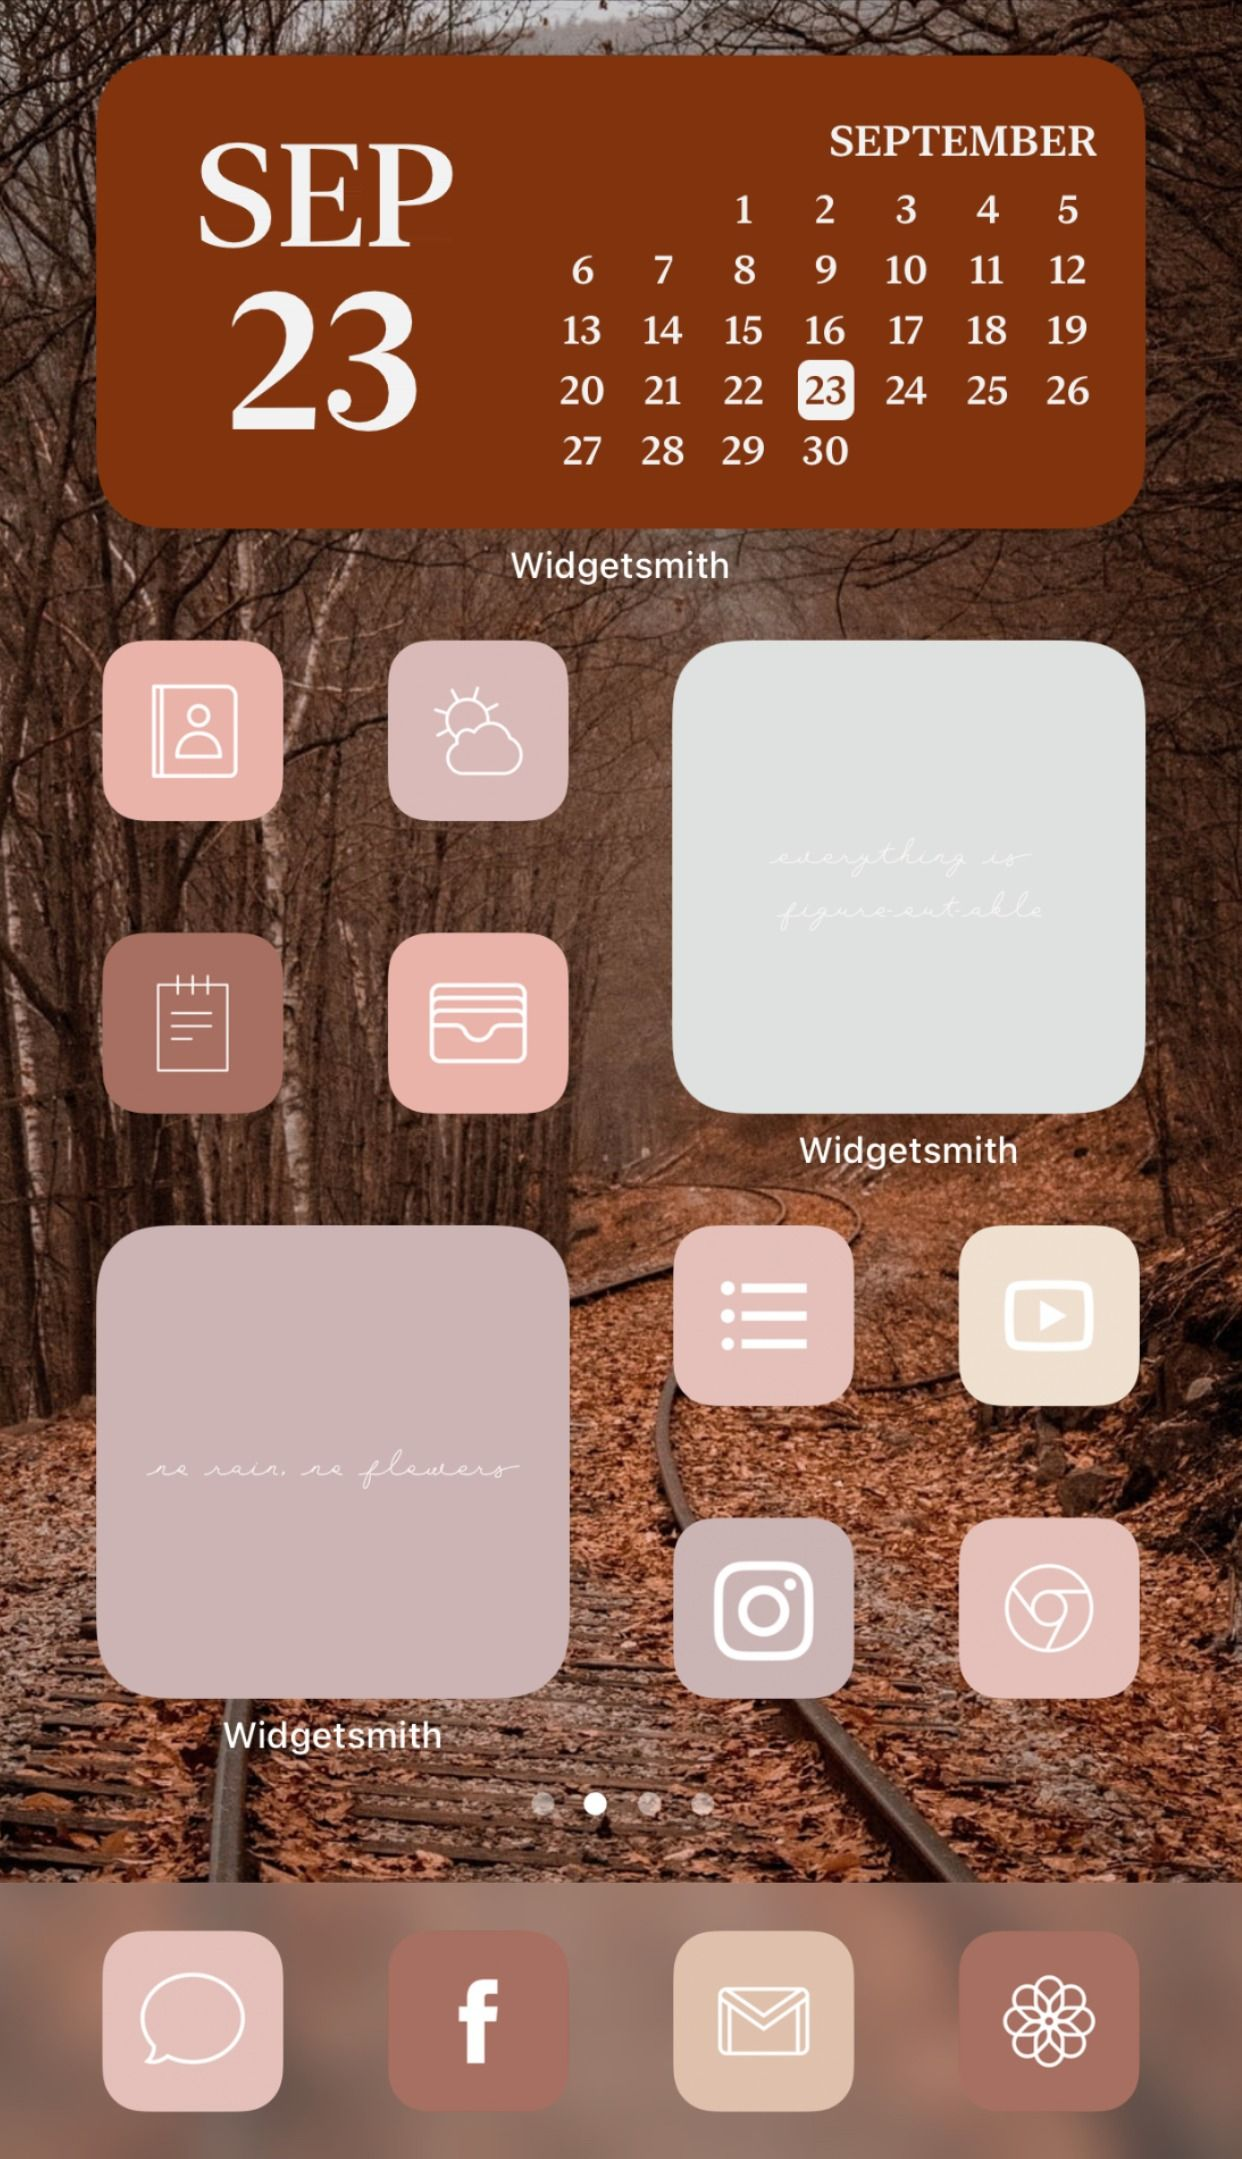 Warm Fall Aesthetic Iphone App Icon Home Screen Ideas Inspo Inspiration App Covers App Icons Ios Inspiration App Iphone Home Screen Layout Iphone Wallpaper App